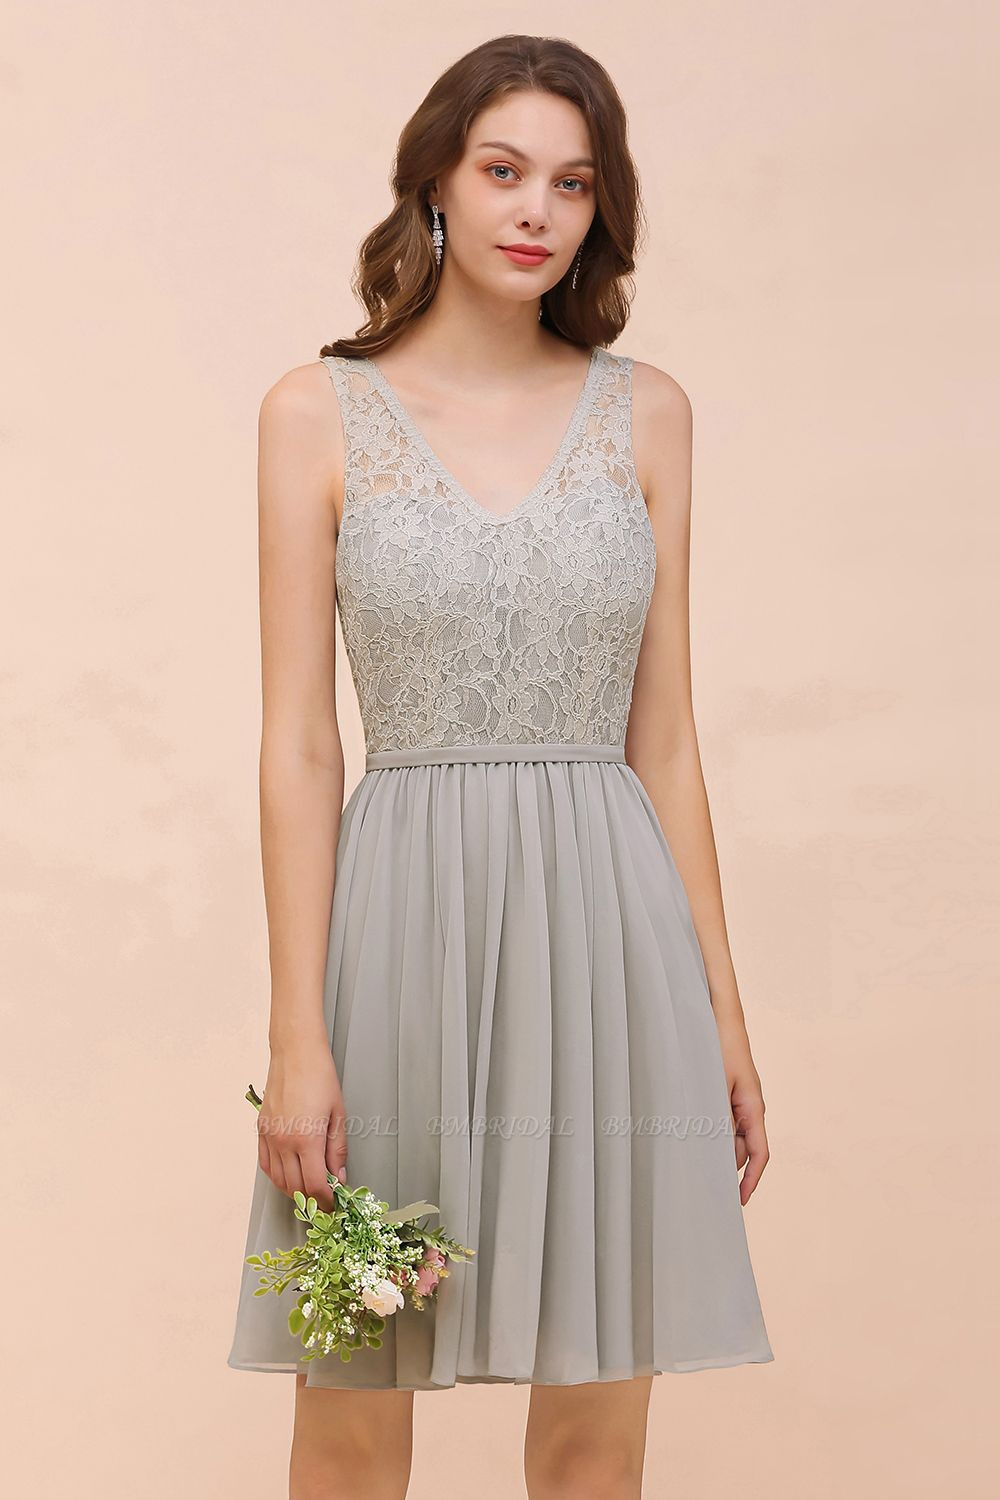 Affordable Lace V-Neck Silver Chiffon Short Bridesmaid Dress Online